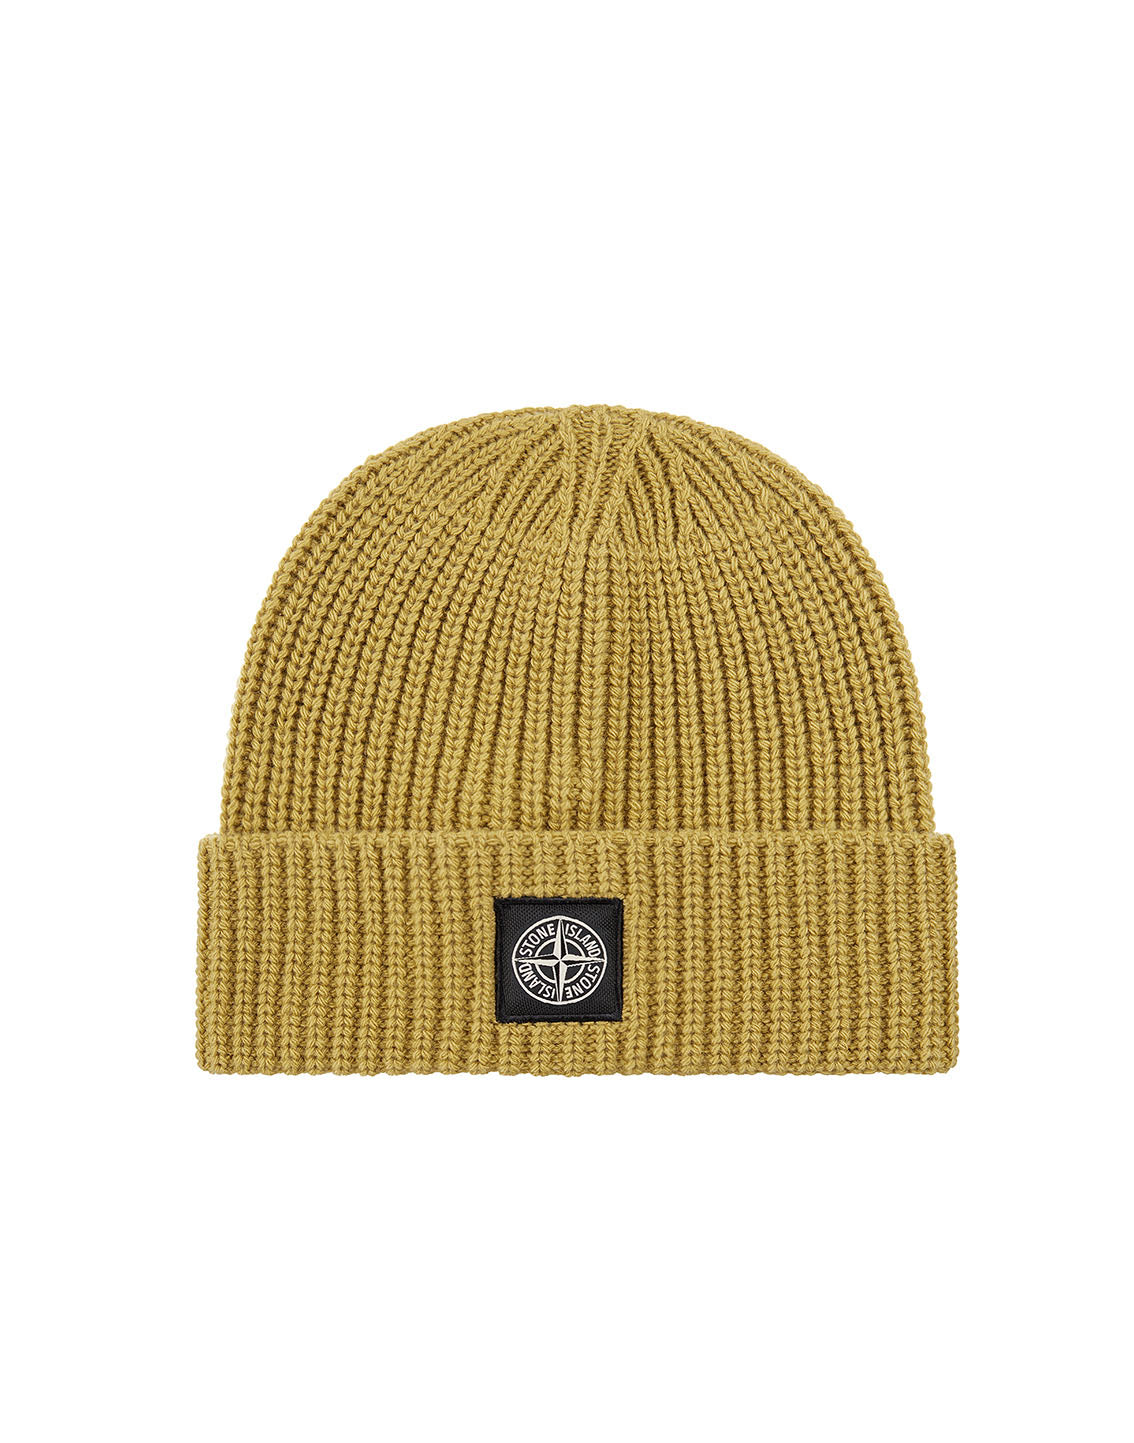 N10B5 Ribbed Wool Hat in Mustard